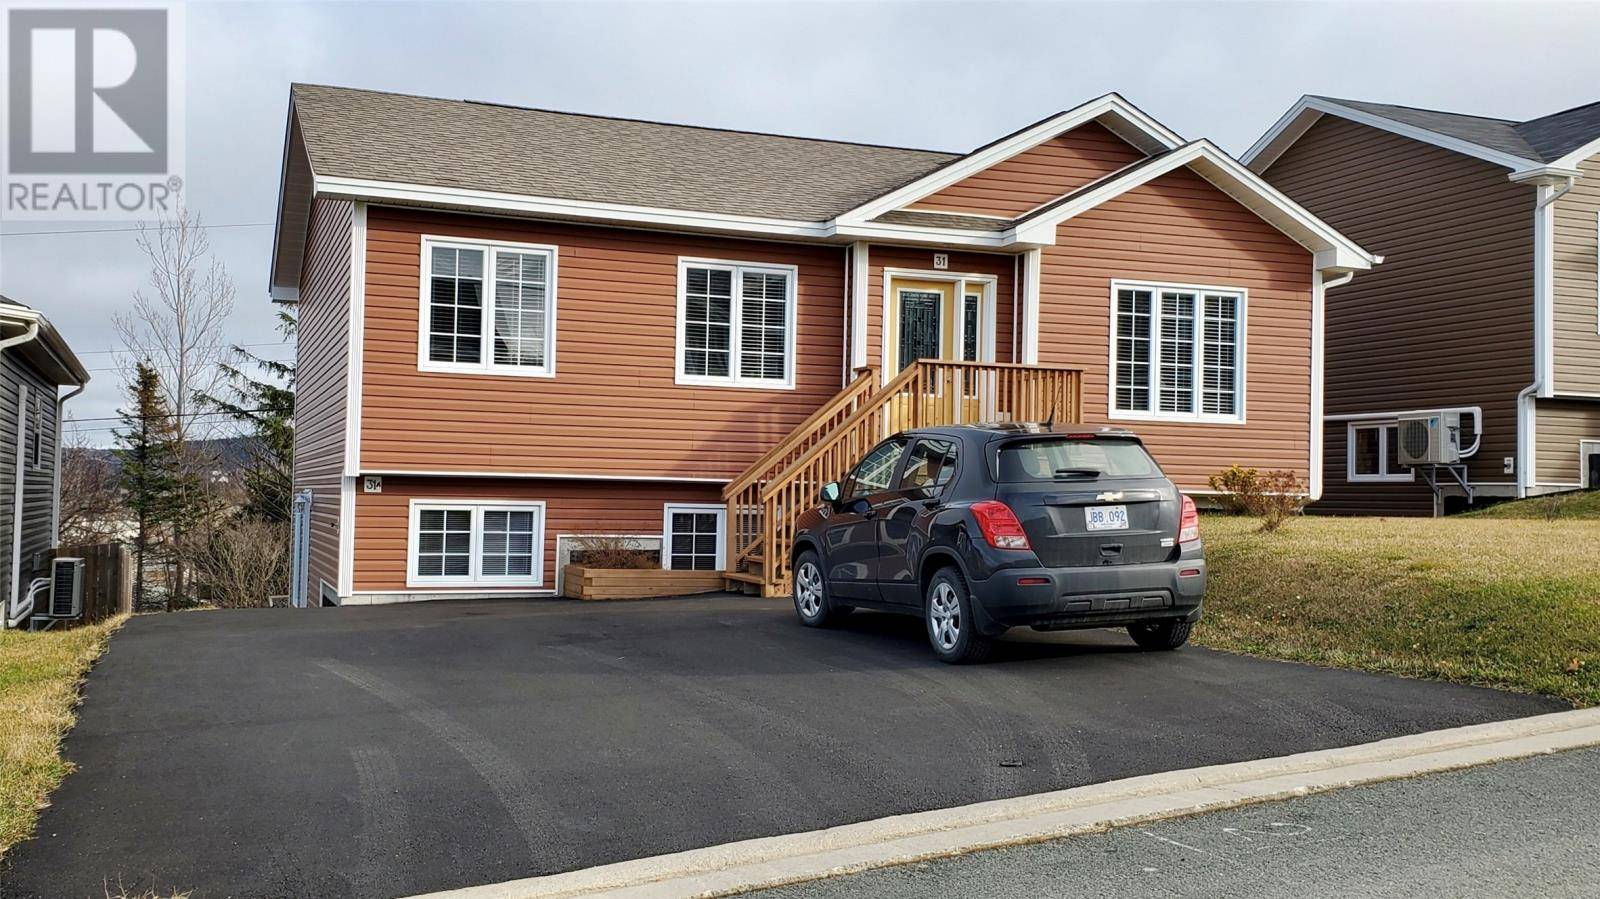 House for sale at 31 Erica Ave Conception Bay South Newfoundland - MLS: 1207625